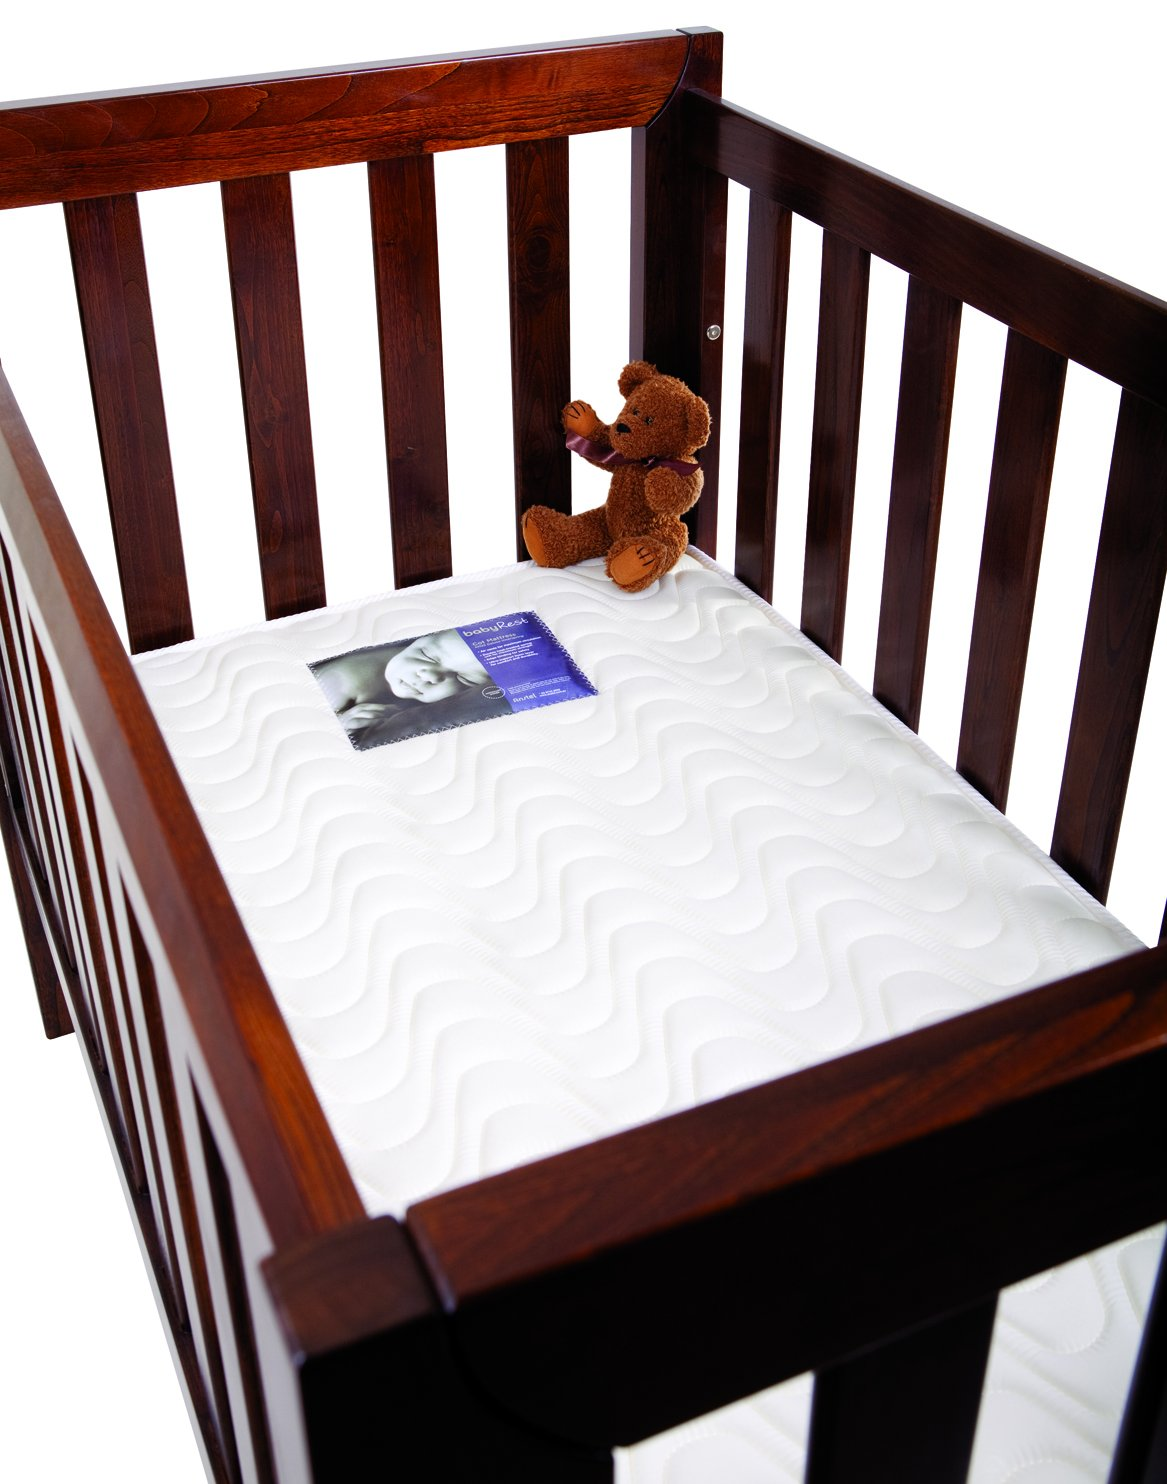 BabyRest Deluxe Innerspring Double Quilted Cot Mattress 1300 x 660 x 125mm Bab